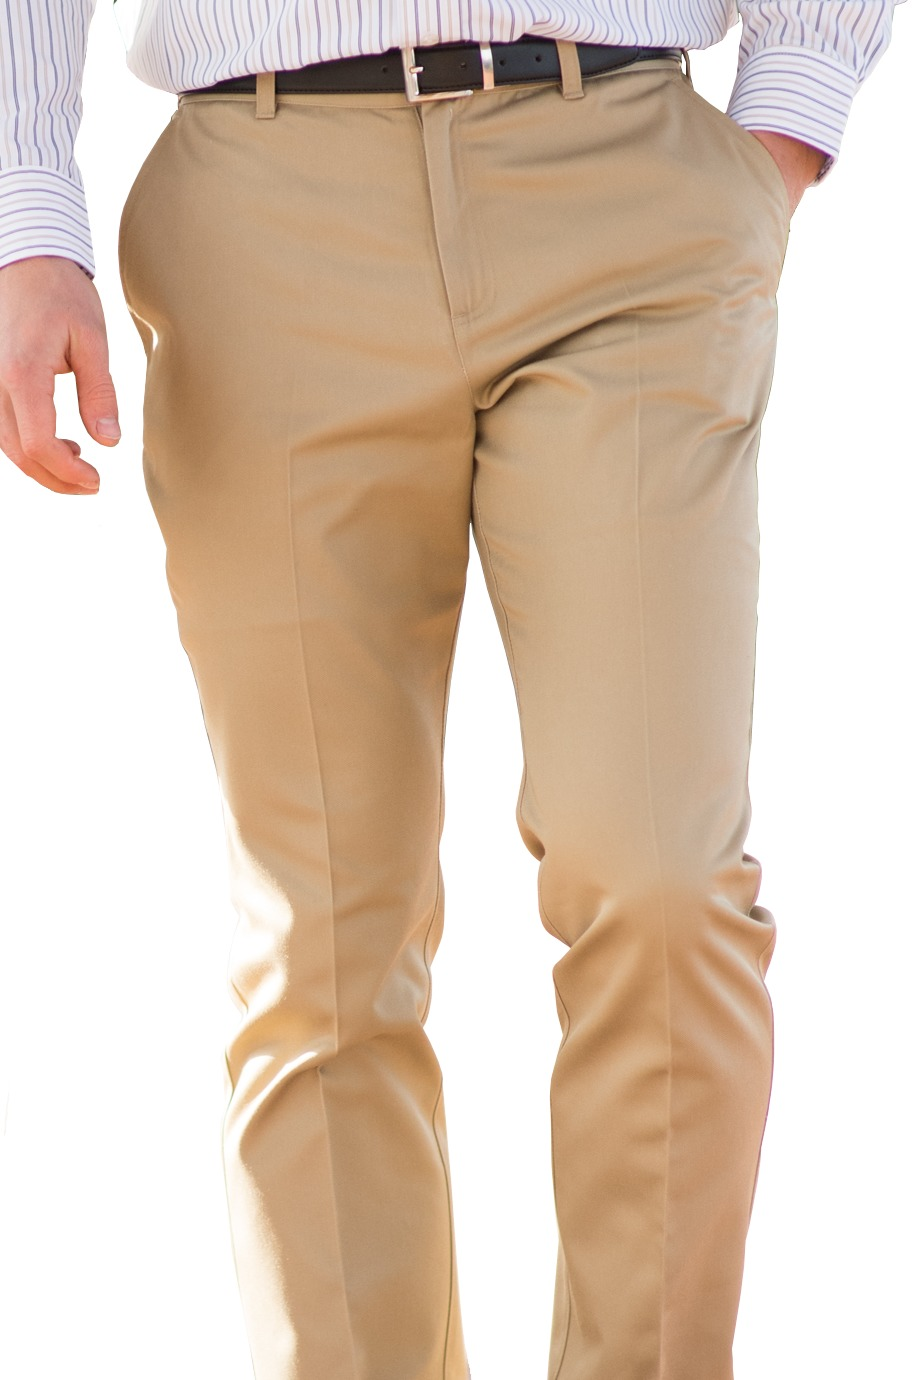 Khaki (Shown for detail)